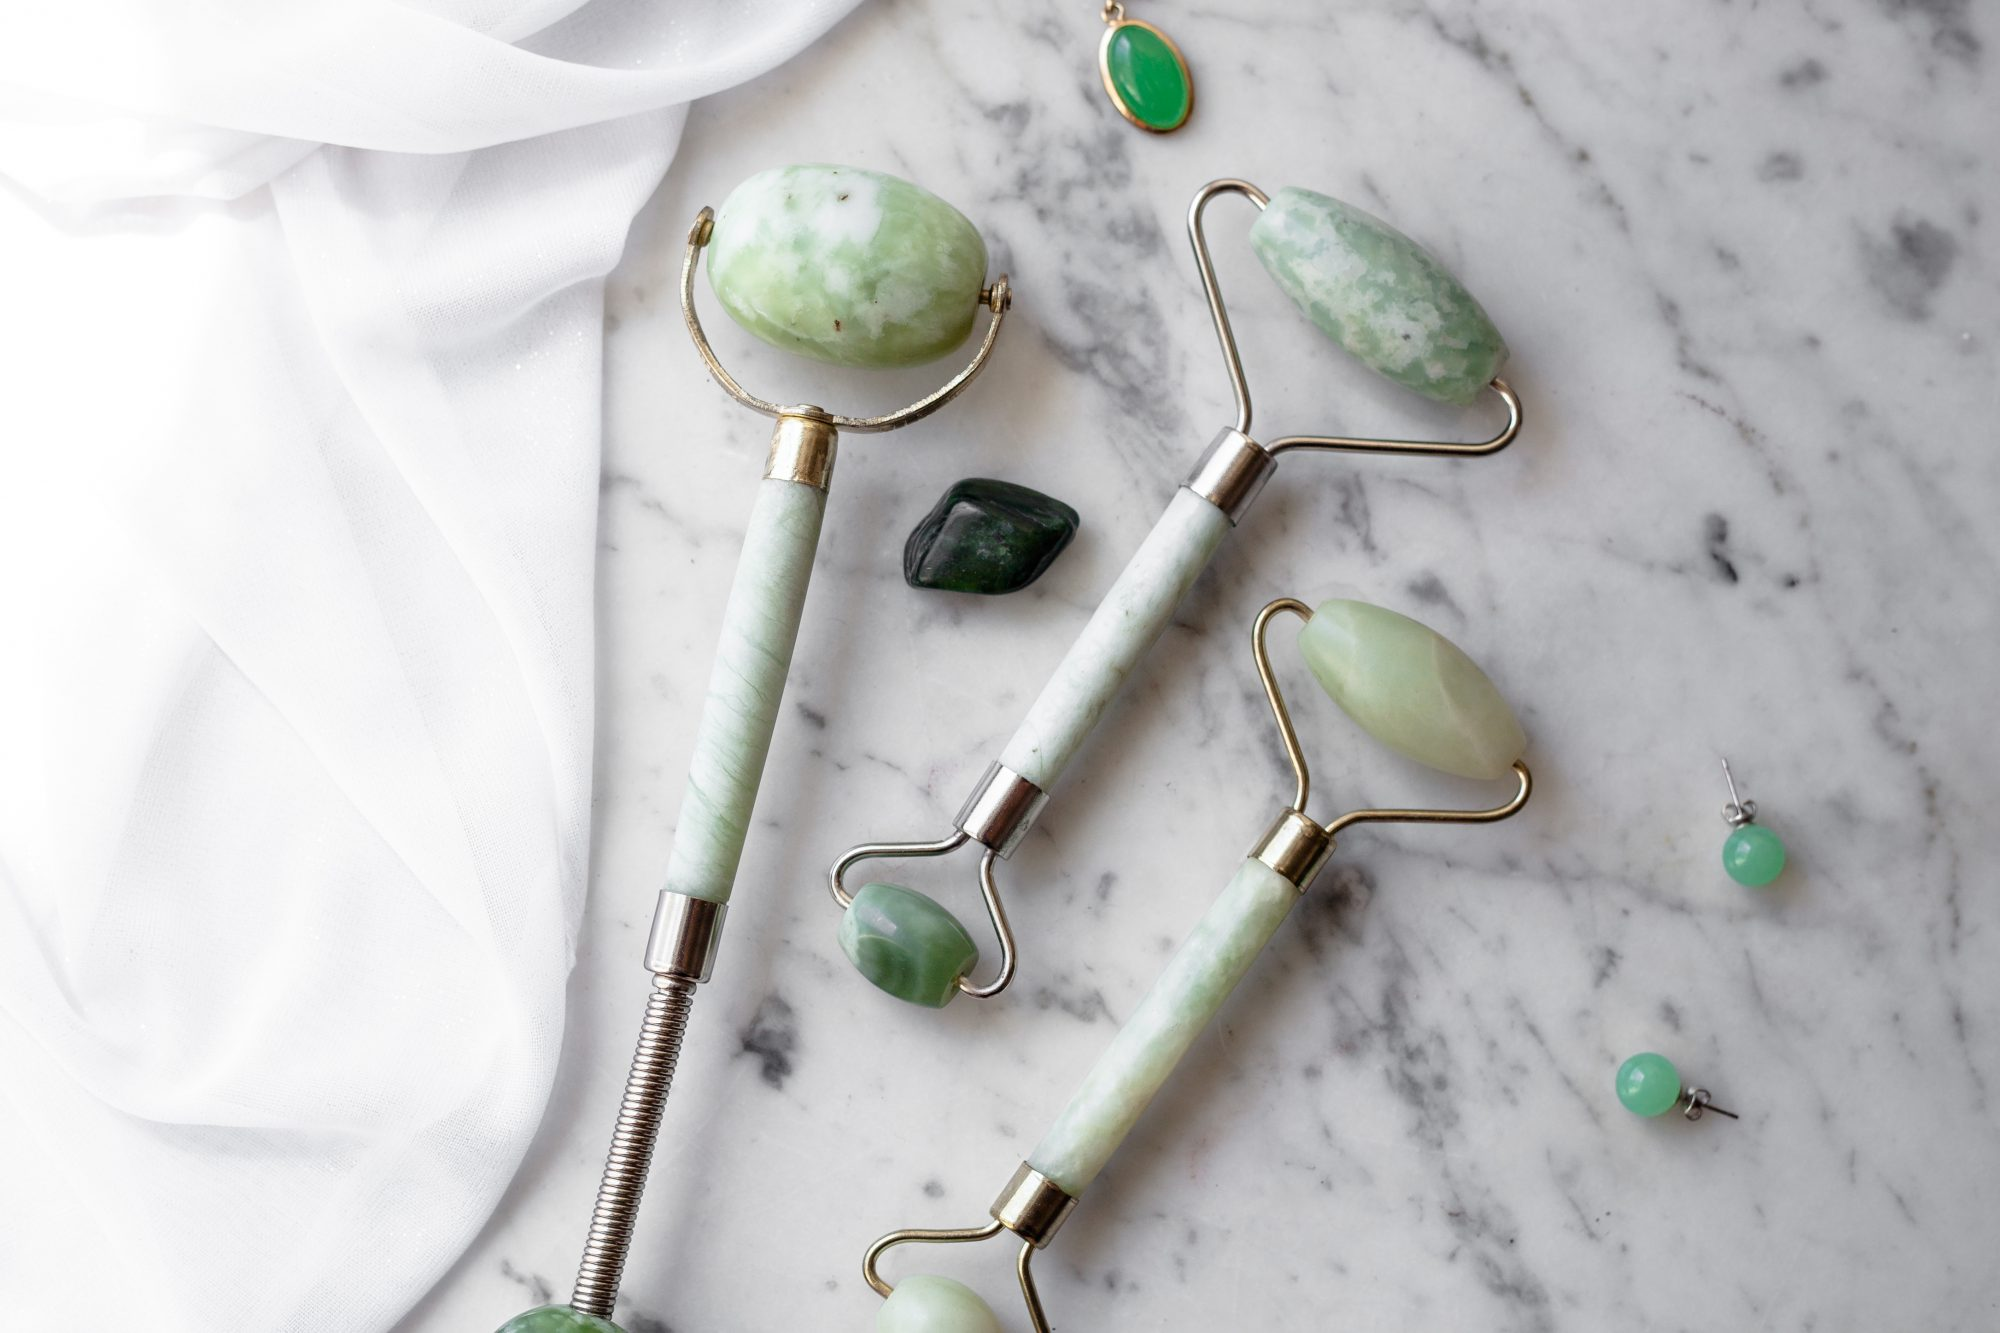 The top-most charm is fake jade, while the bottom stud earrings are real. The dark stone is real nephrite jade. What do you think the jade rollers are made of? - www.theballeronabudget.com